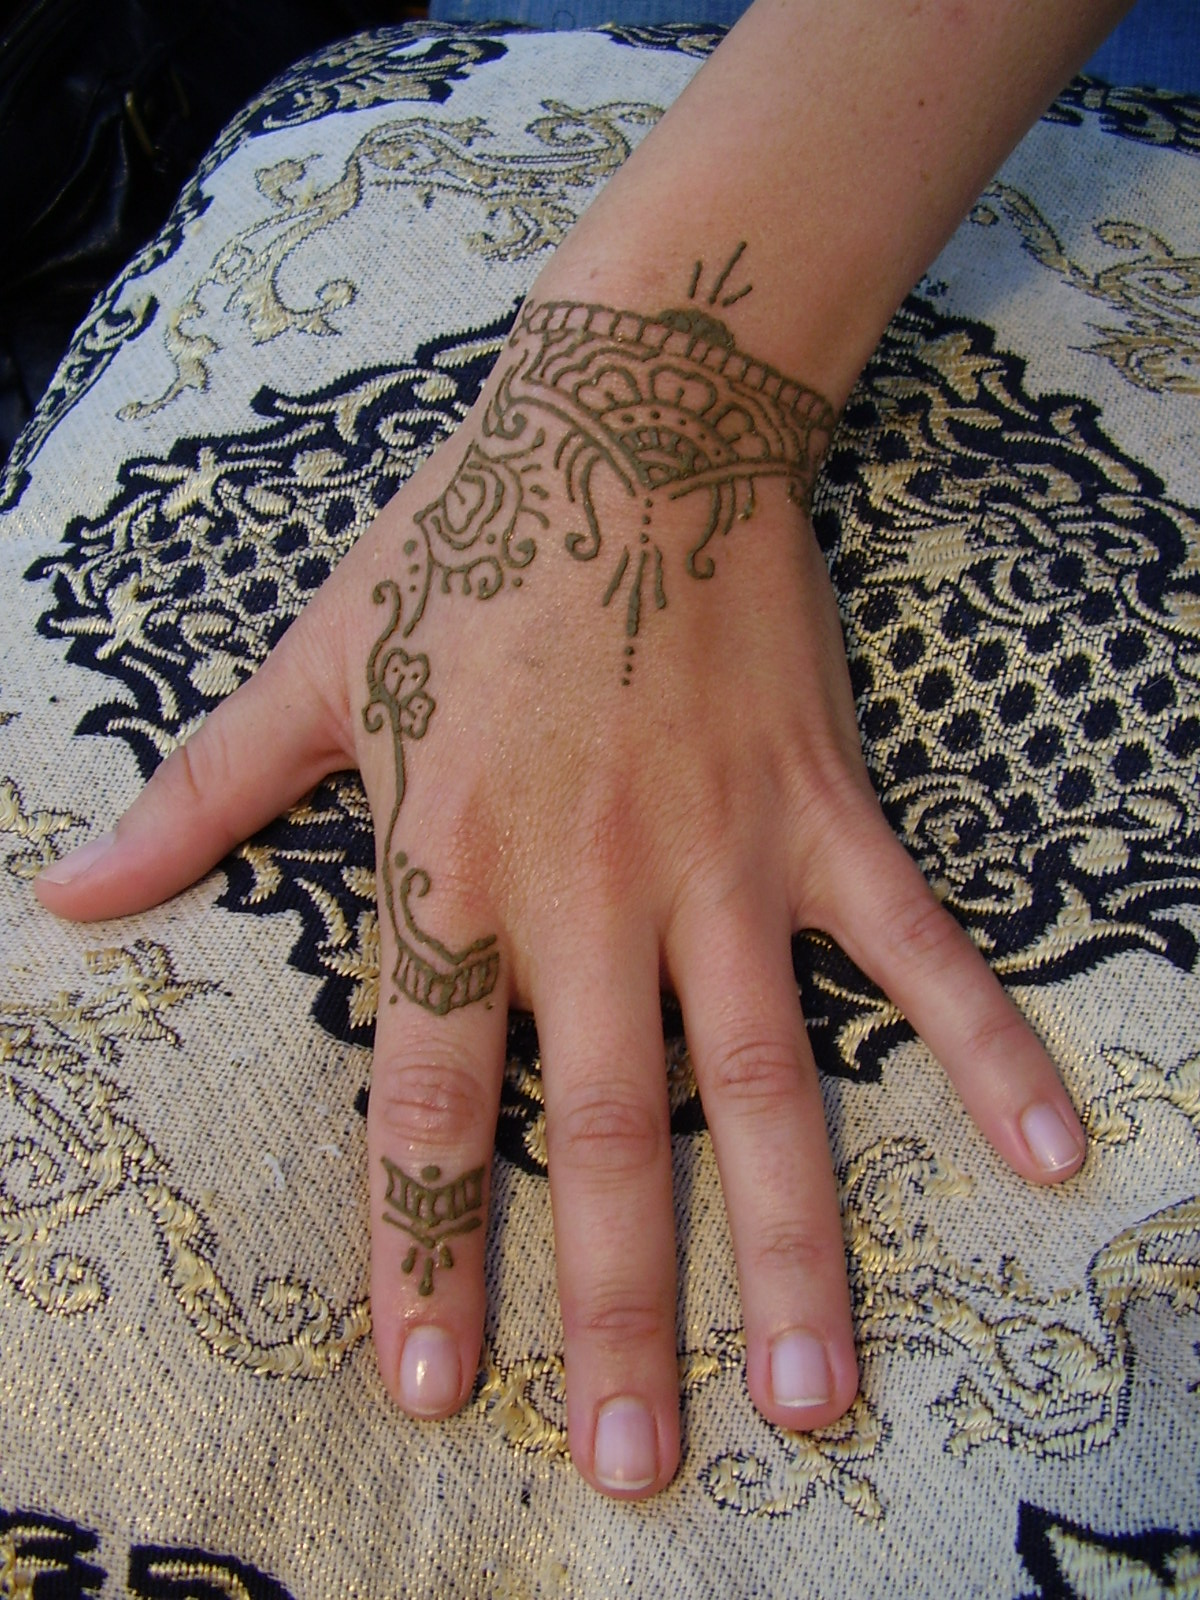 Cute Henna Tattoo Designs: 75+ Beautiful Mehndi Designs (Henna Hand Art)